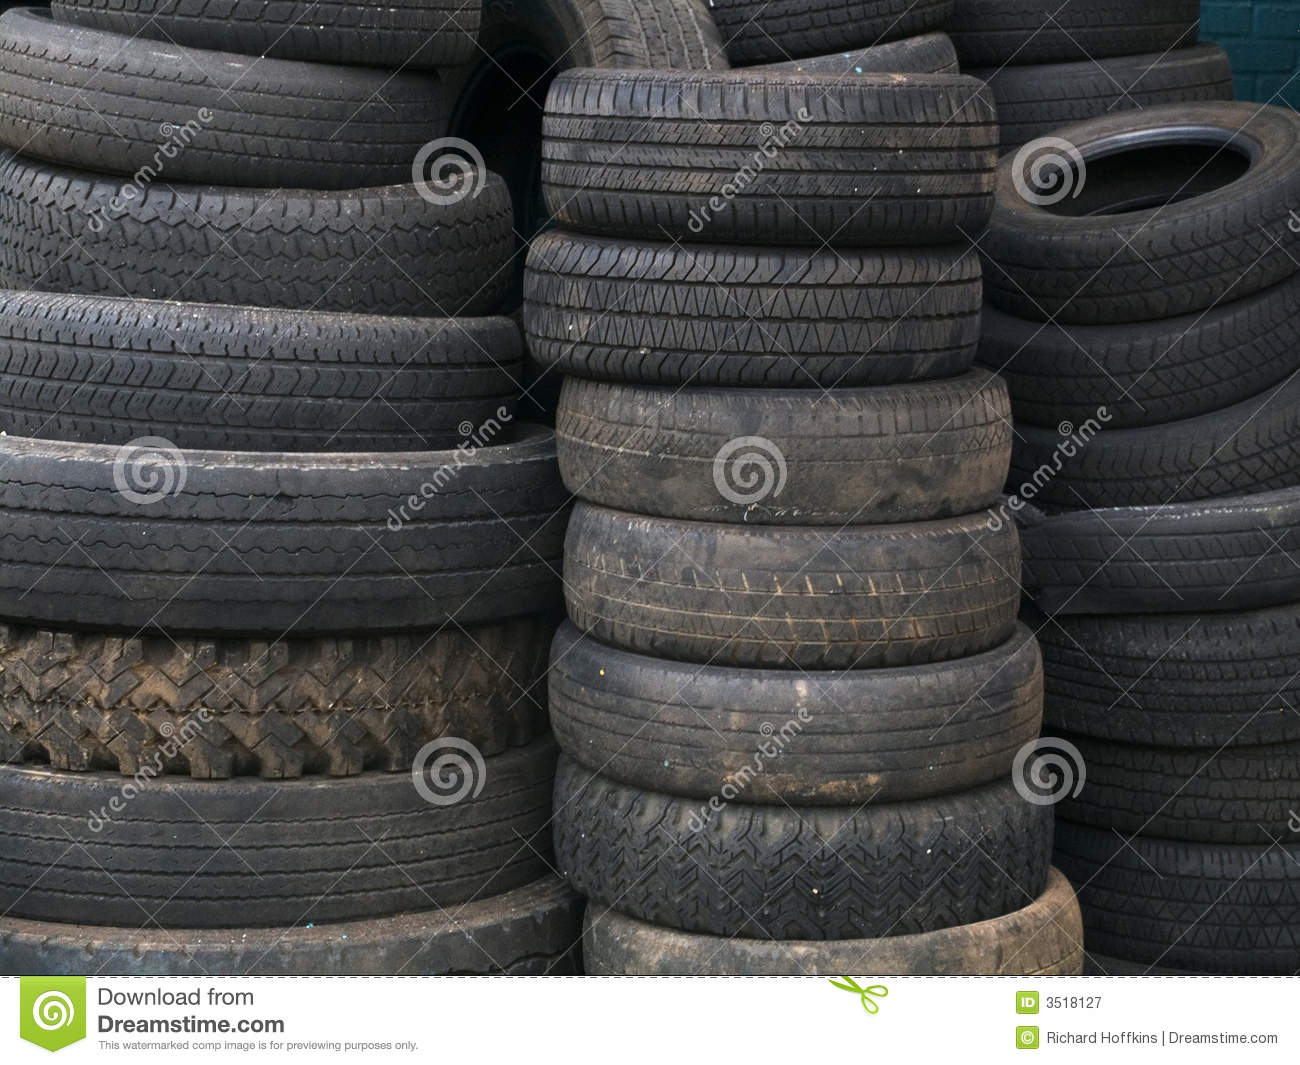 royalty free stock photography used tires image 3518127. Black Bedroom Furniture Sets. Home Design Ideas